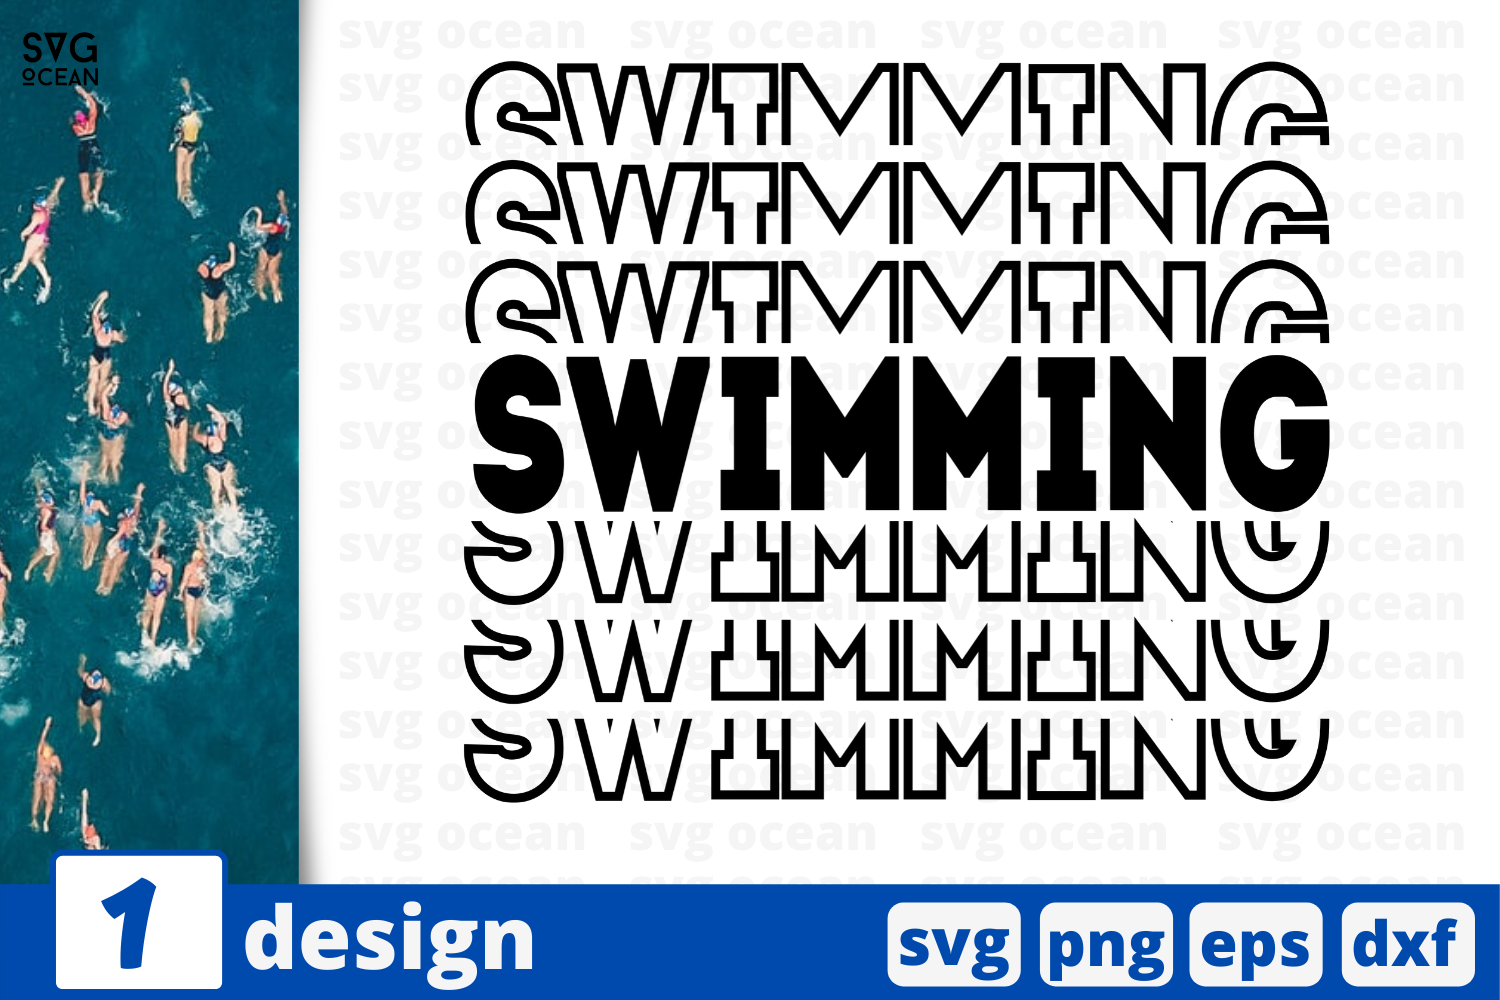 Download Free Swimming Graphic By Svgocean Creative Fabrica for Cricut Explore, Silhouette and other cutting machines.